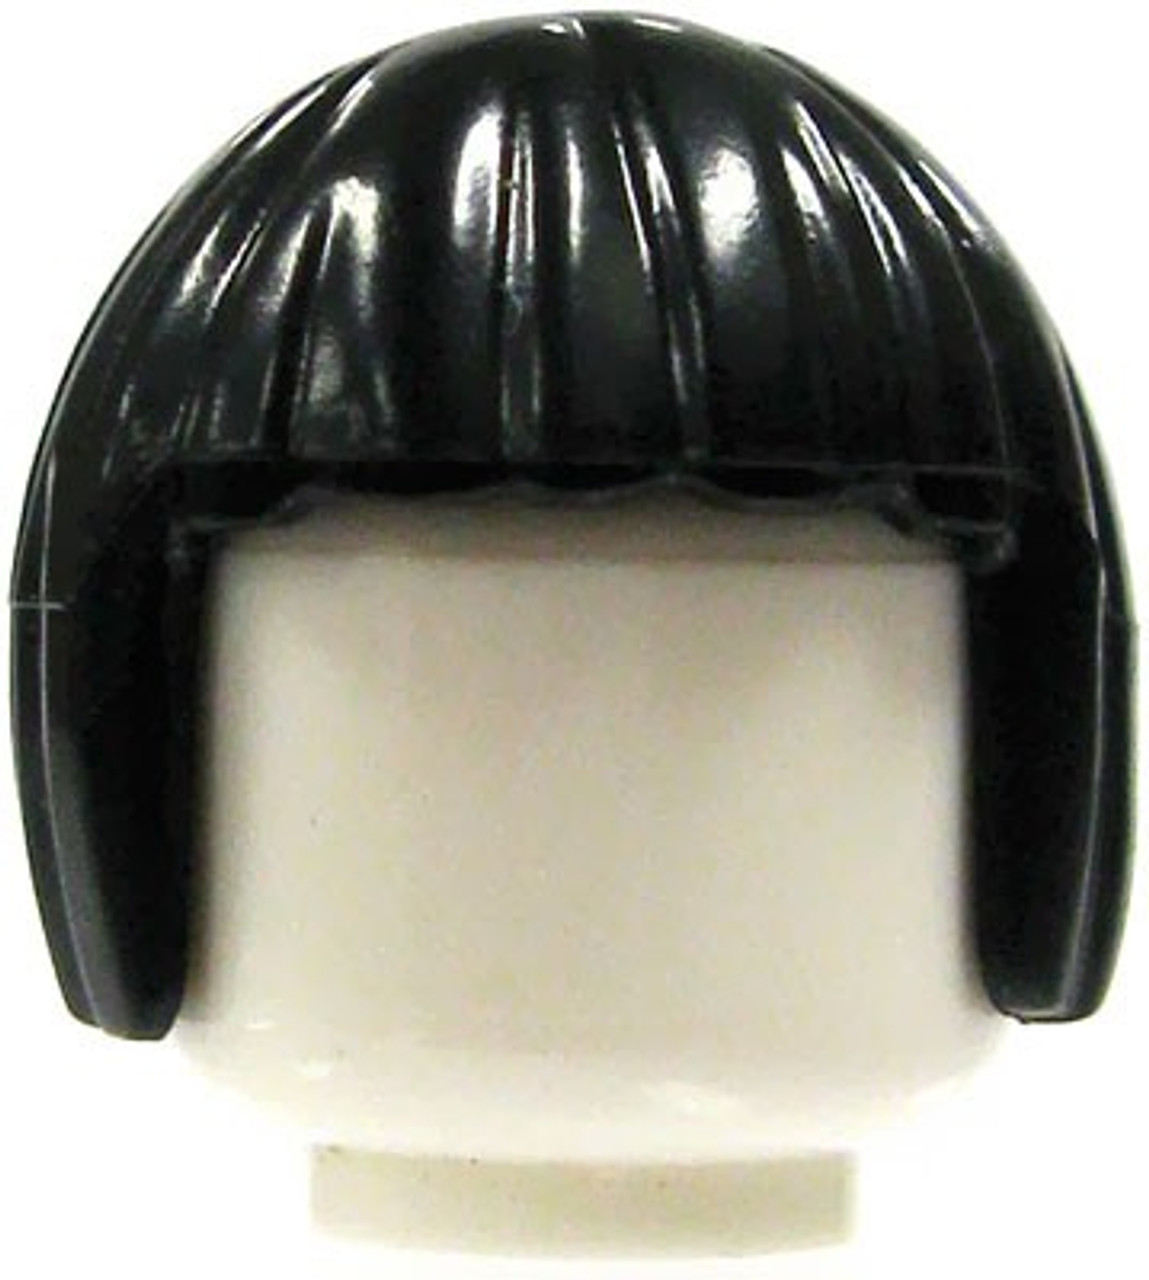 LEGO Minifigure Parts Female Black Bob Cut Loose Hair [Loose]